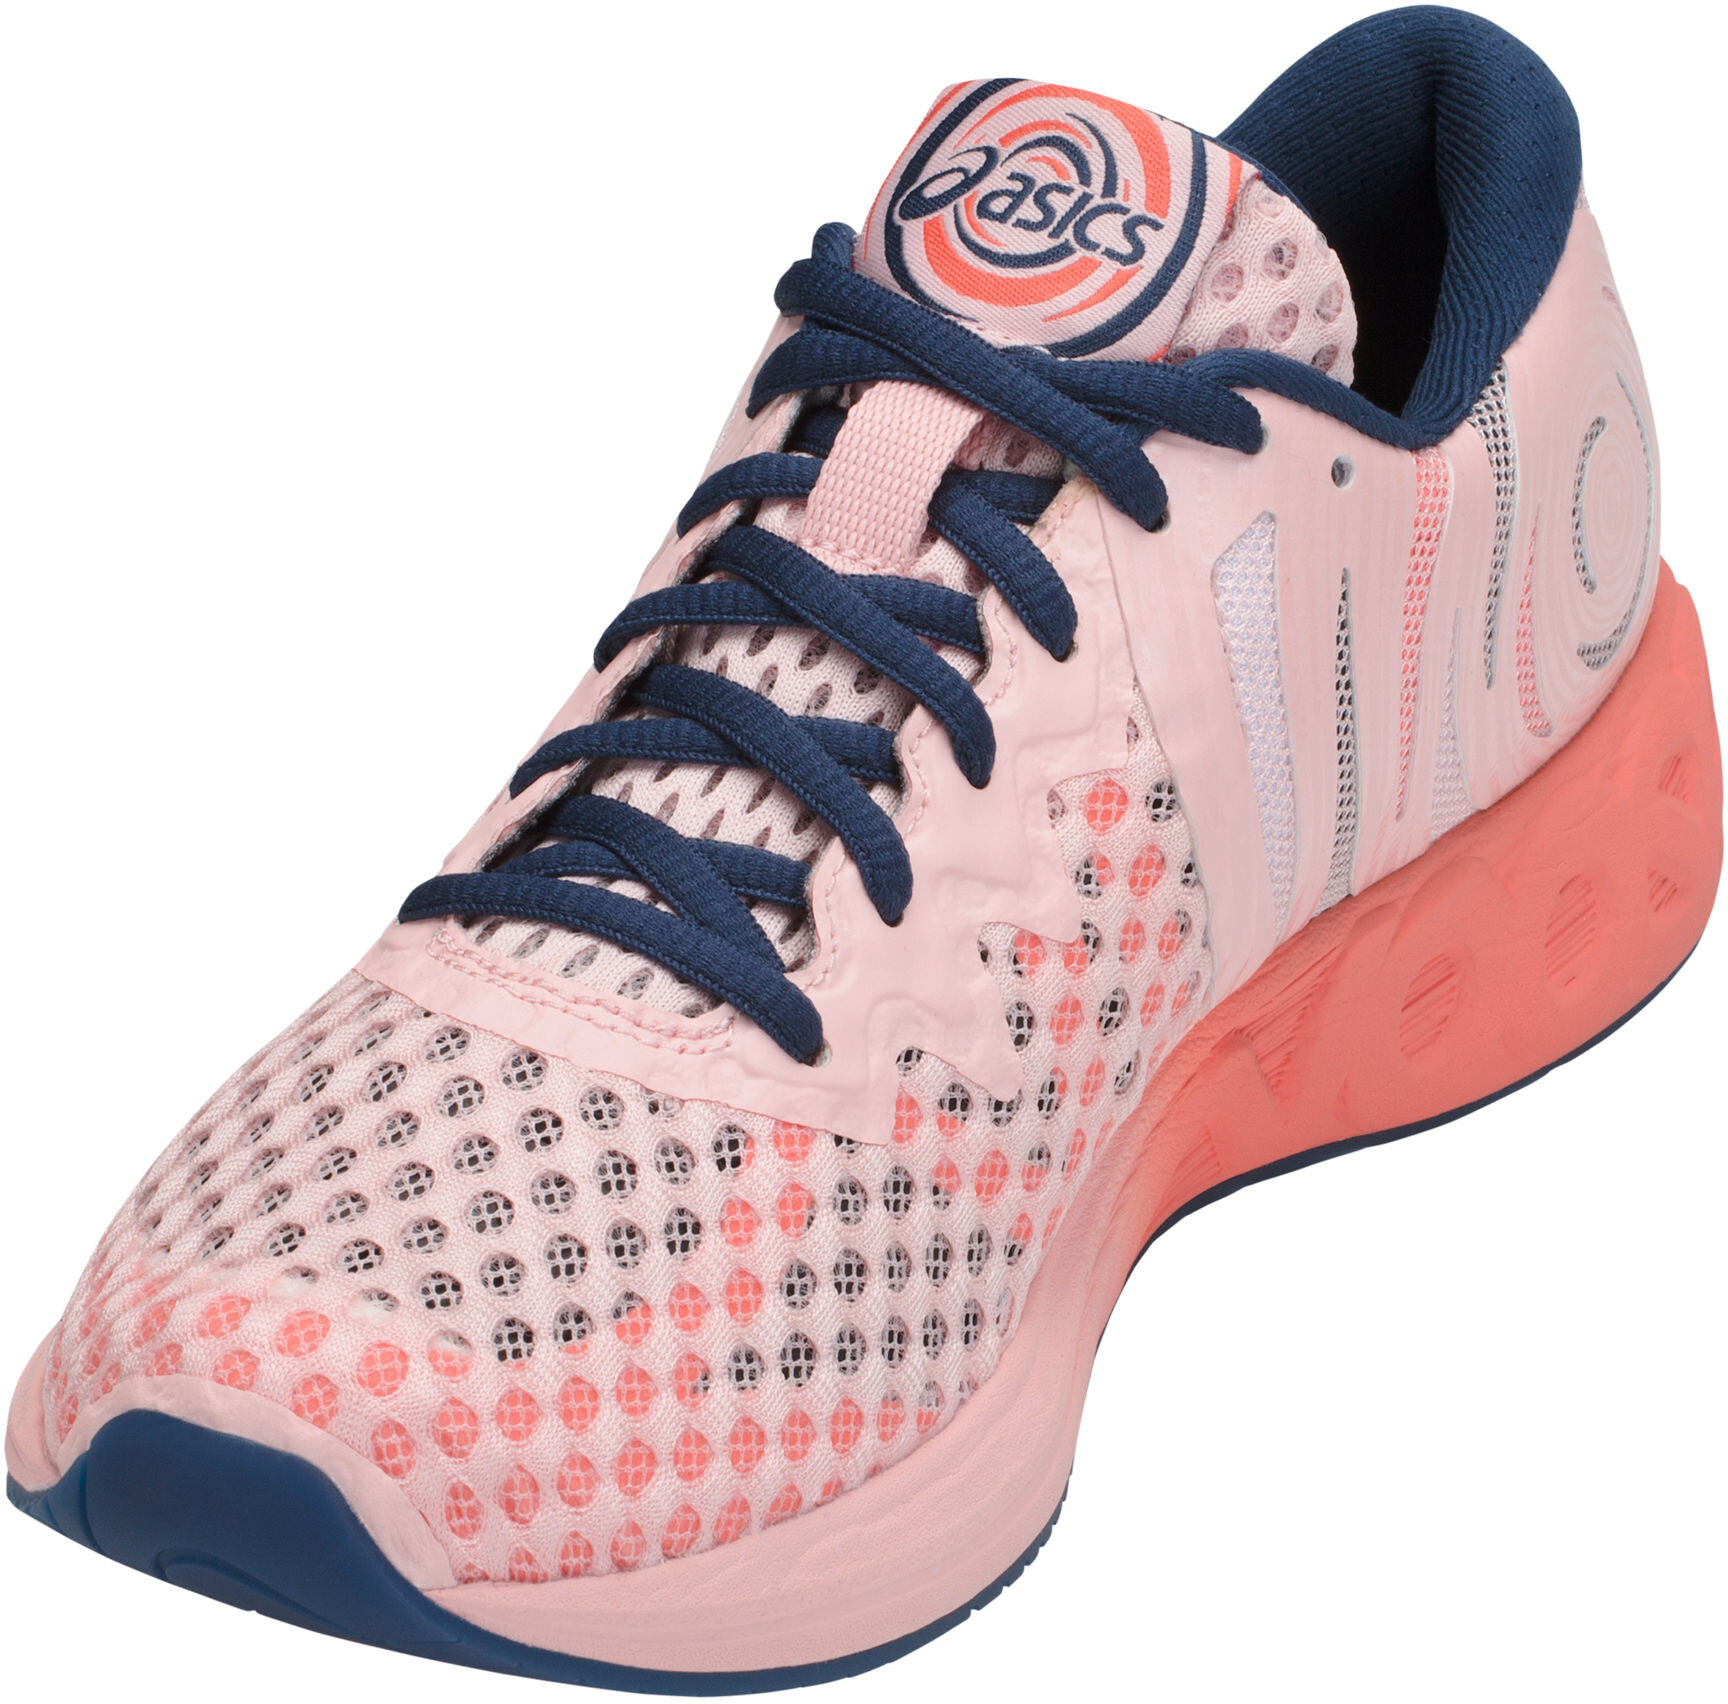 f80ef8512ef asics Noosa FF 2 Shoes Women seashell pink/dark blue/begonia